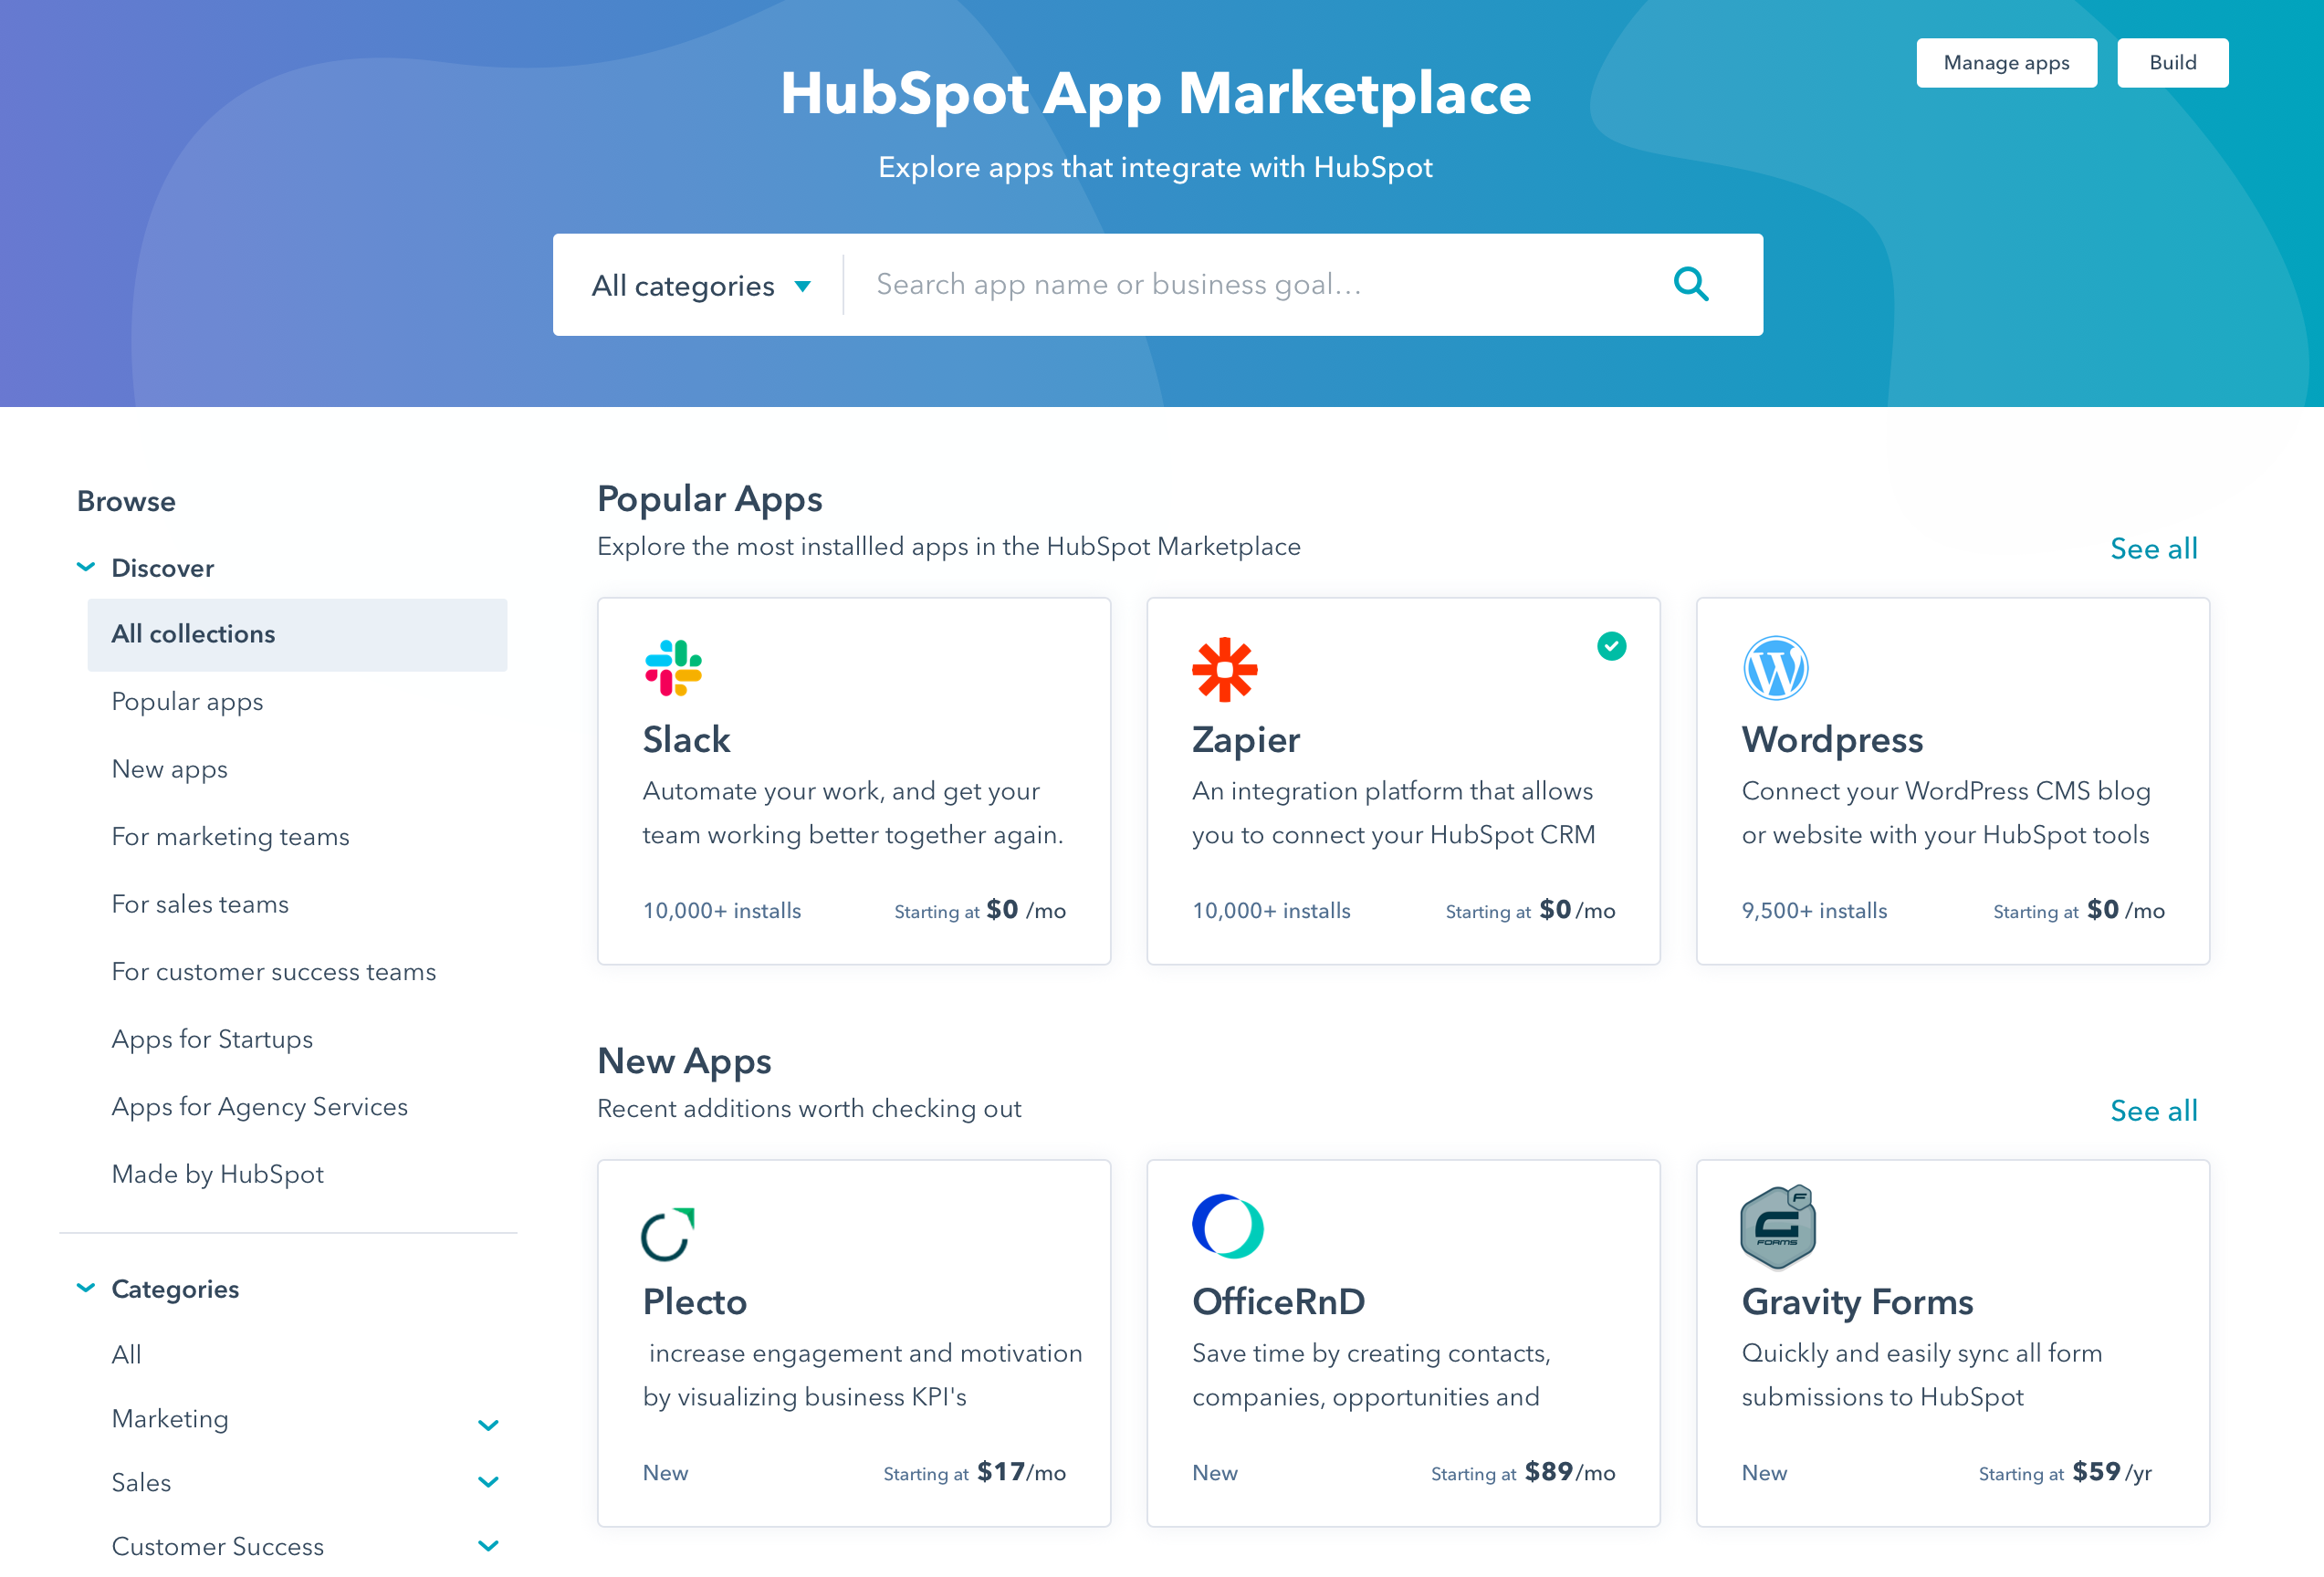 HubSpot Launches Redesigned App Marketplace to Make It Easier for Growing Businesses to Find and Connect with More Than 300 Integrations